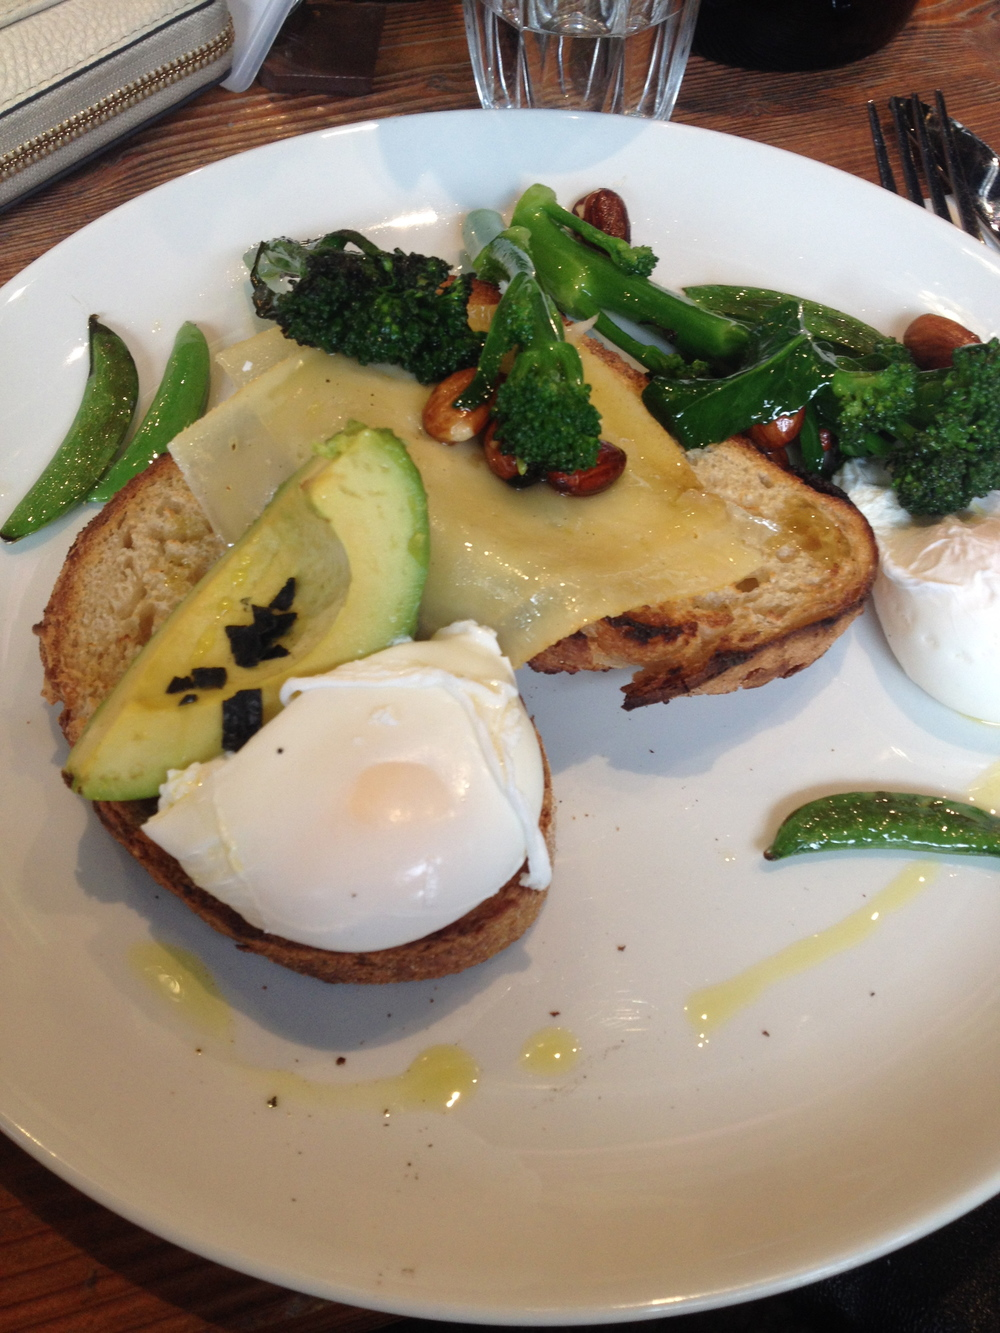 Greens and eggs on sourdough!